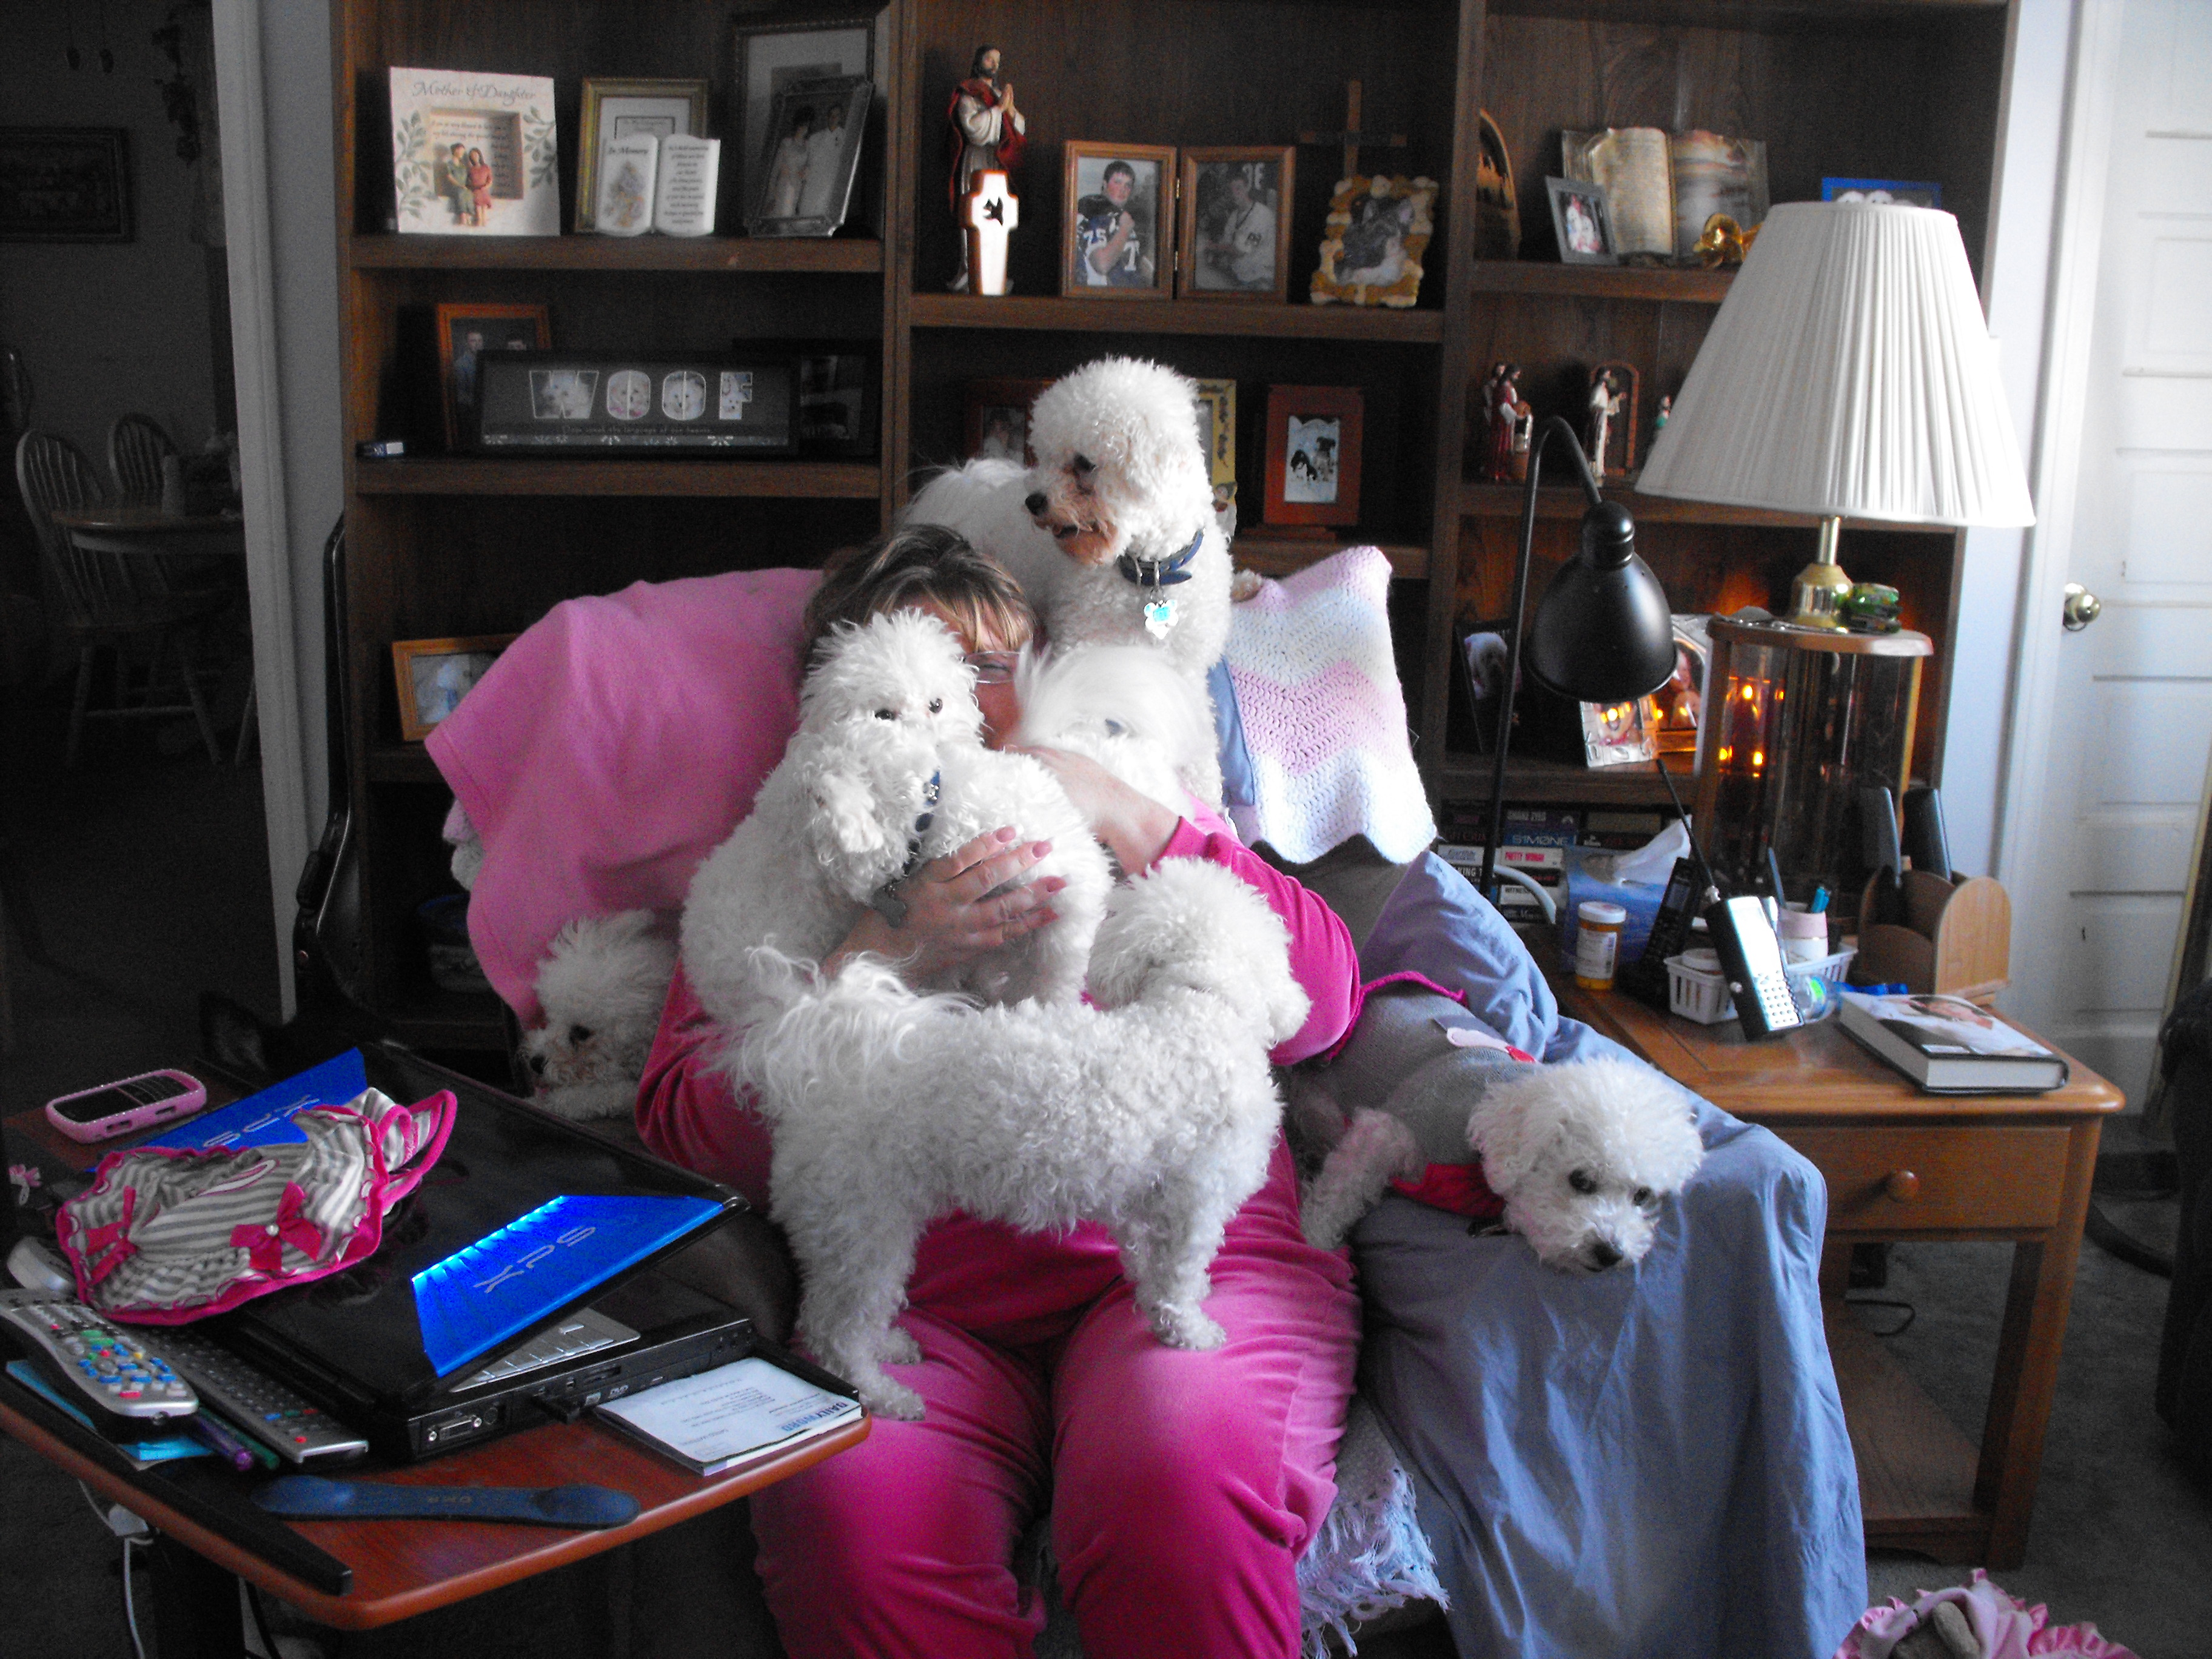 That's me covered in Bichons